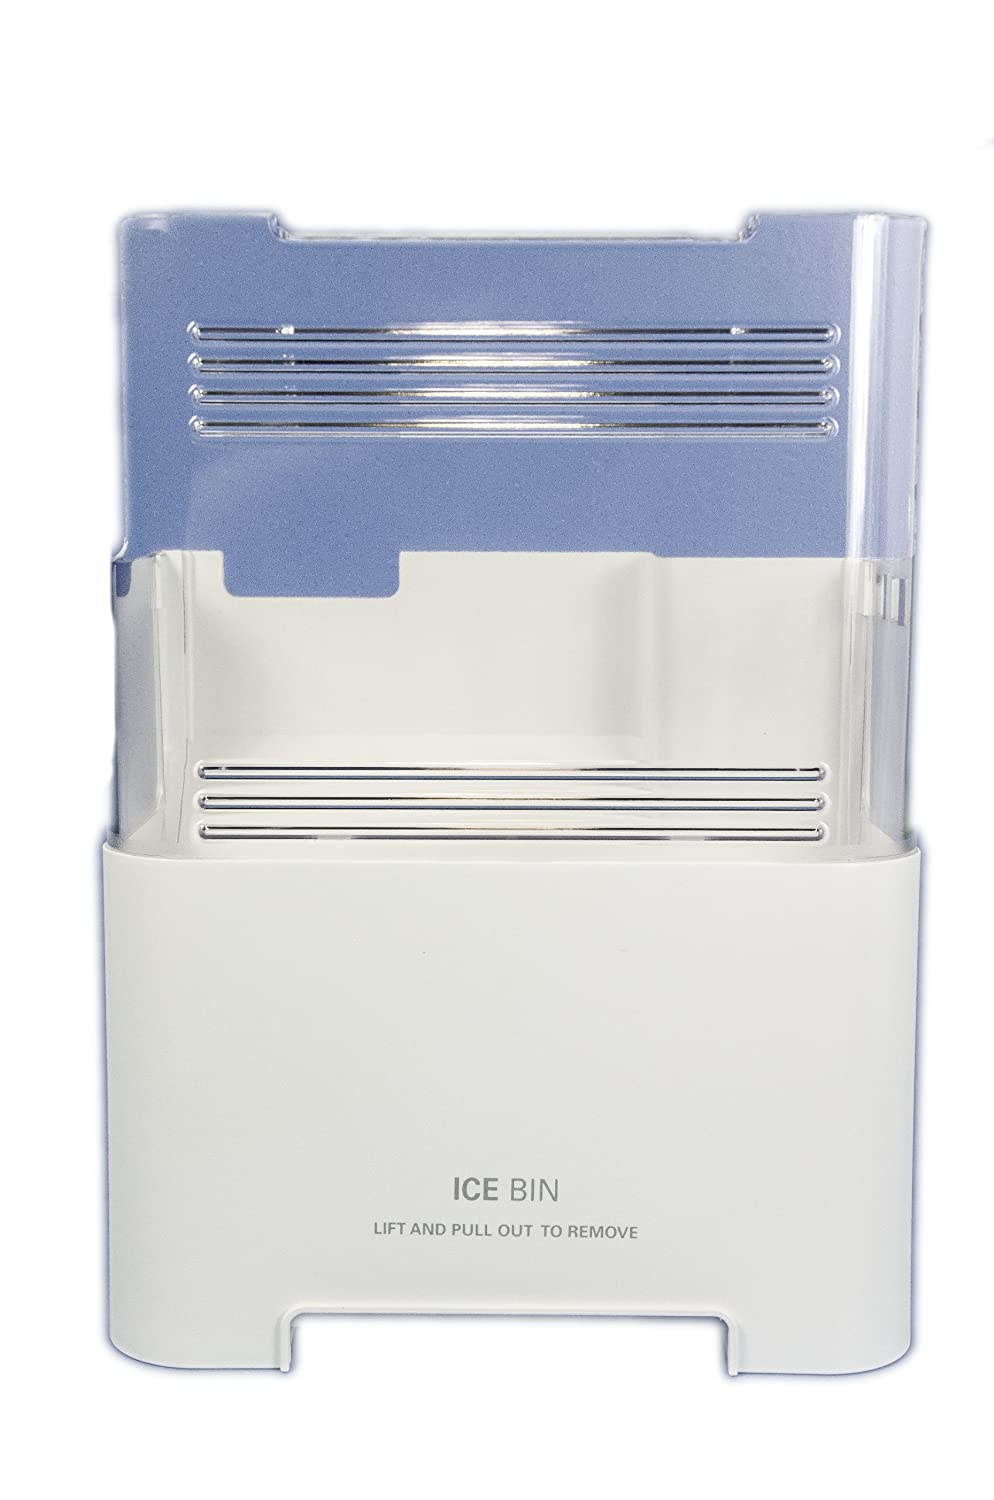 Amazon.com: LG Electronics 5075JA1044K Refrigerator/Freezer Ice Maker  Bucket Assembly: Home Improvement